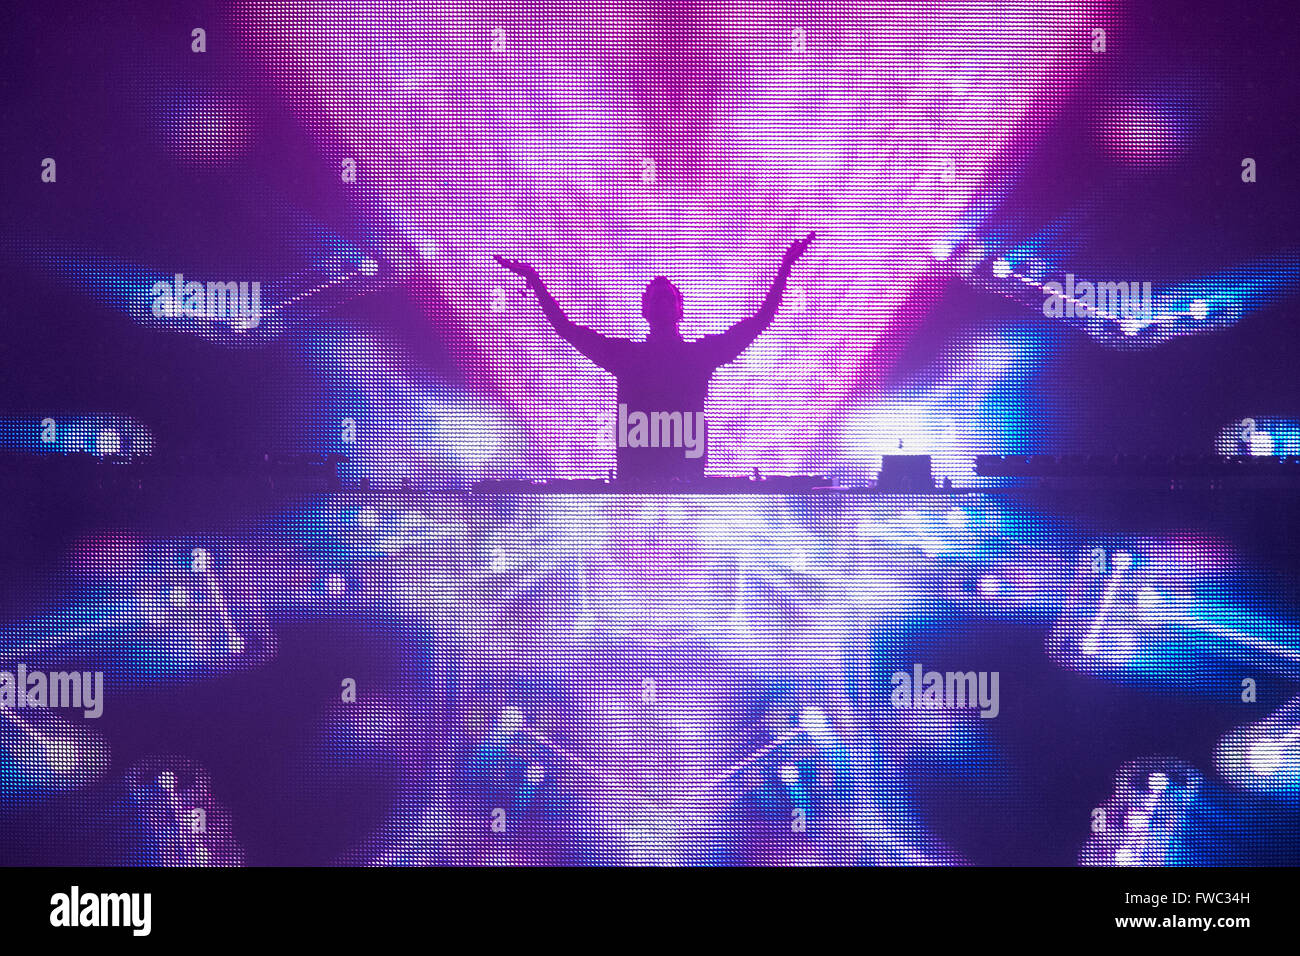 DJ Calvin Harris performing live on the decks at the T in the Park festival in Scotland. - Stock Image